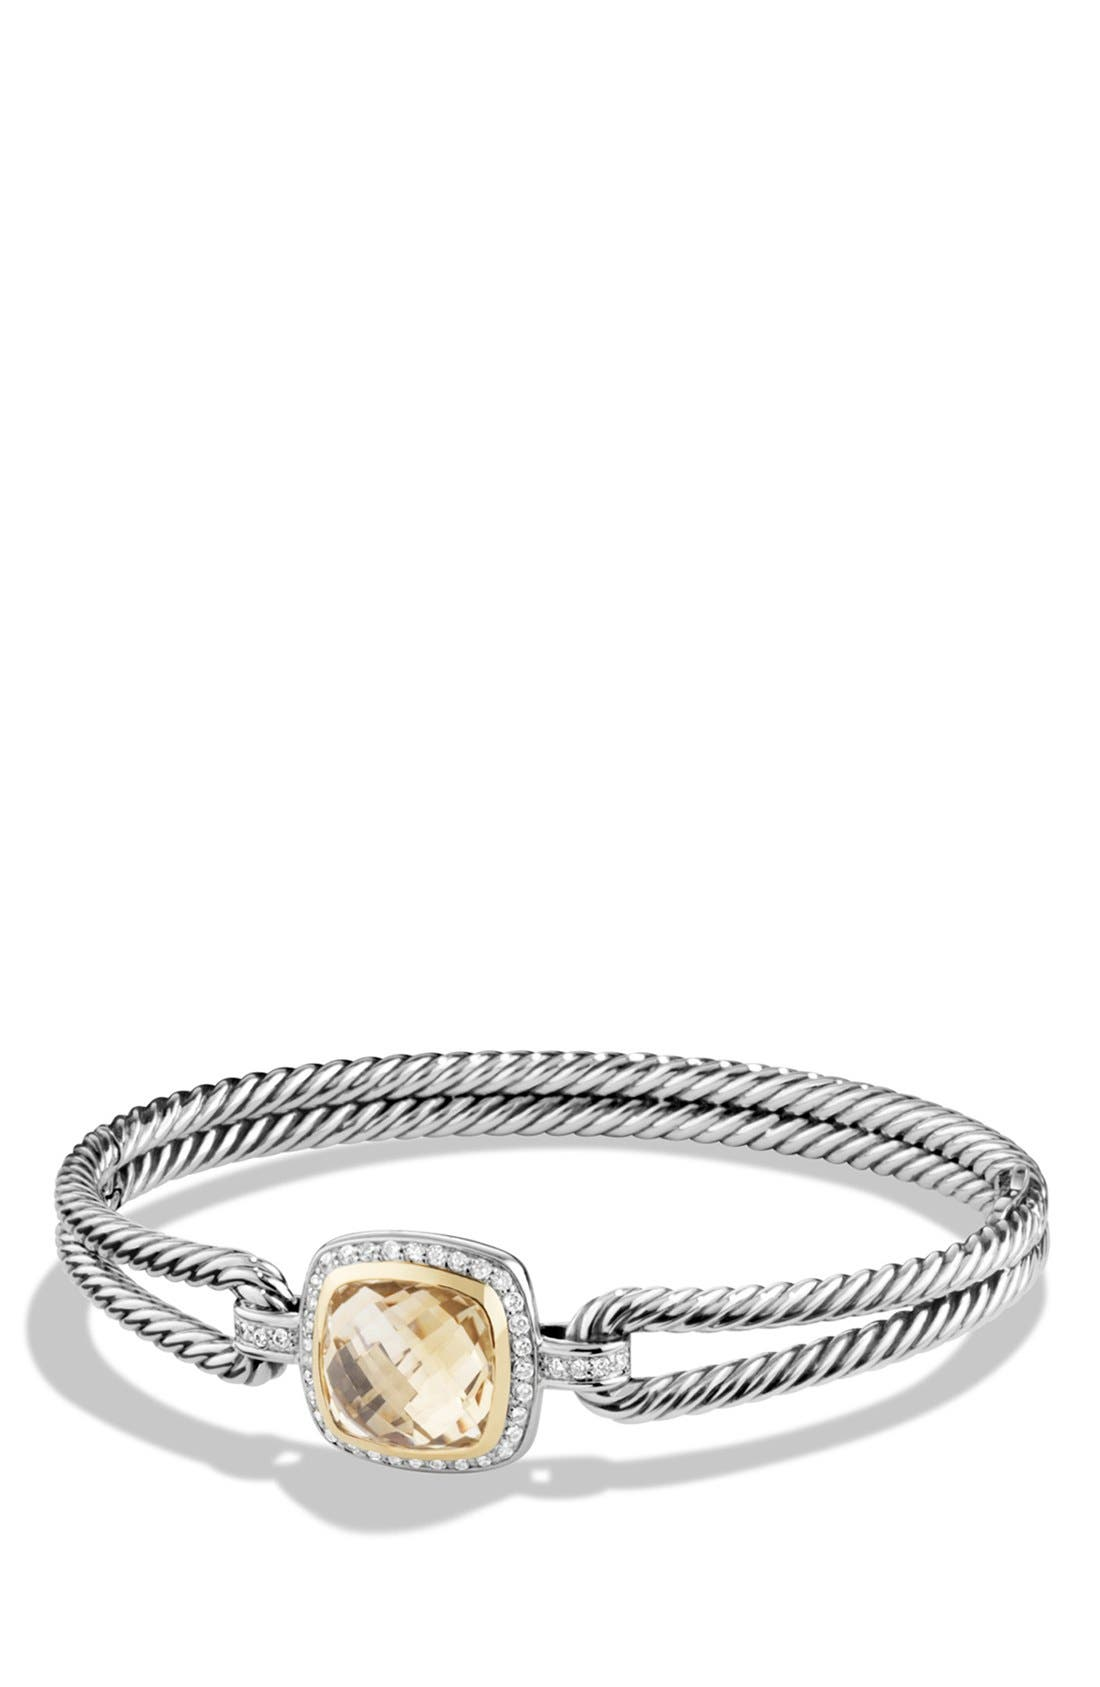 'Albion' Bracelet with Diamonds and 18K Gold, Main, color, CHAMPAGNE CITRINE